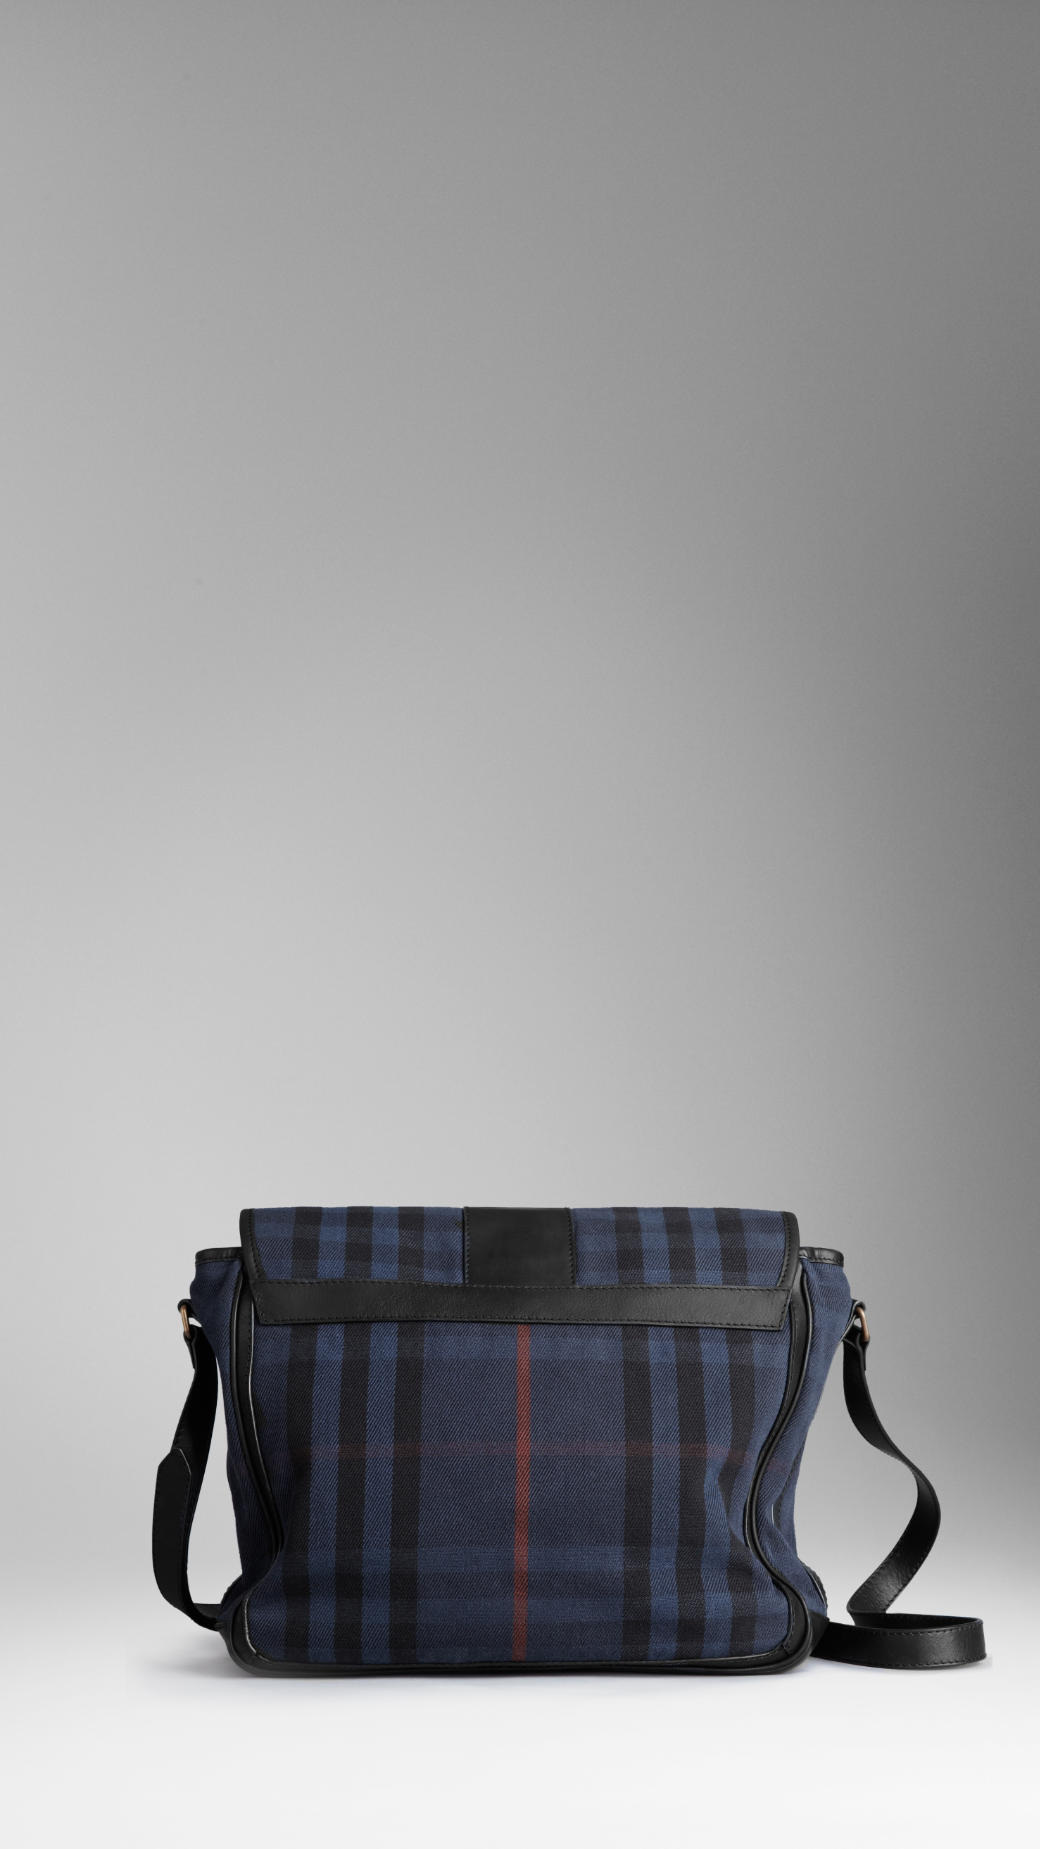 b618b5355dd6 Lyst - Burberry Small Vintage Washed Check Messenger Bag in Blue for Men